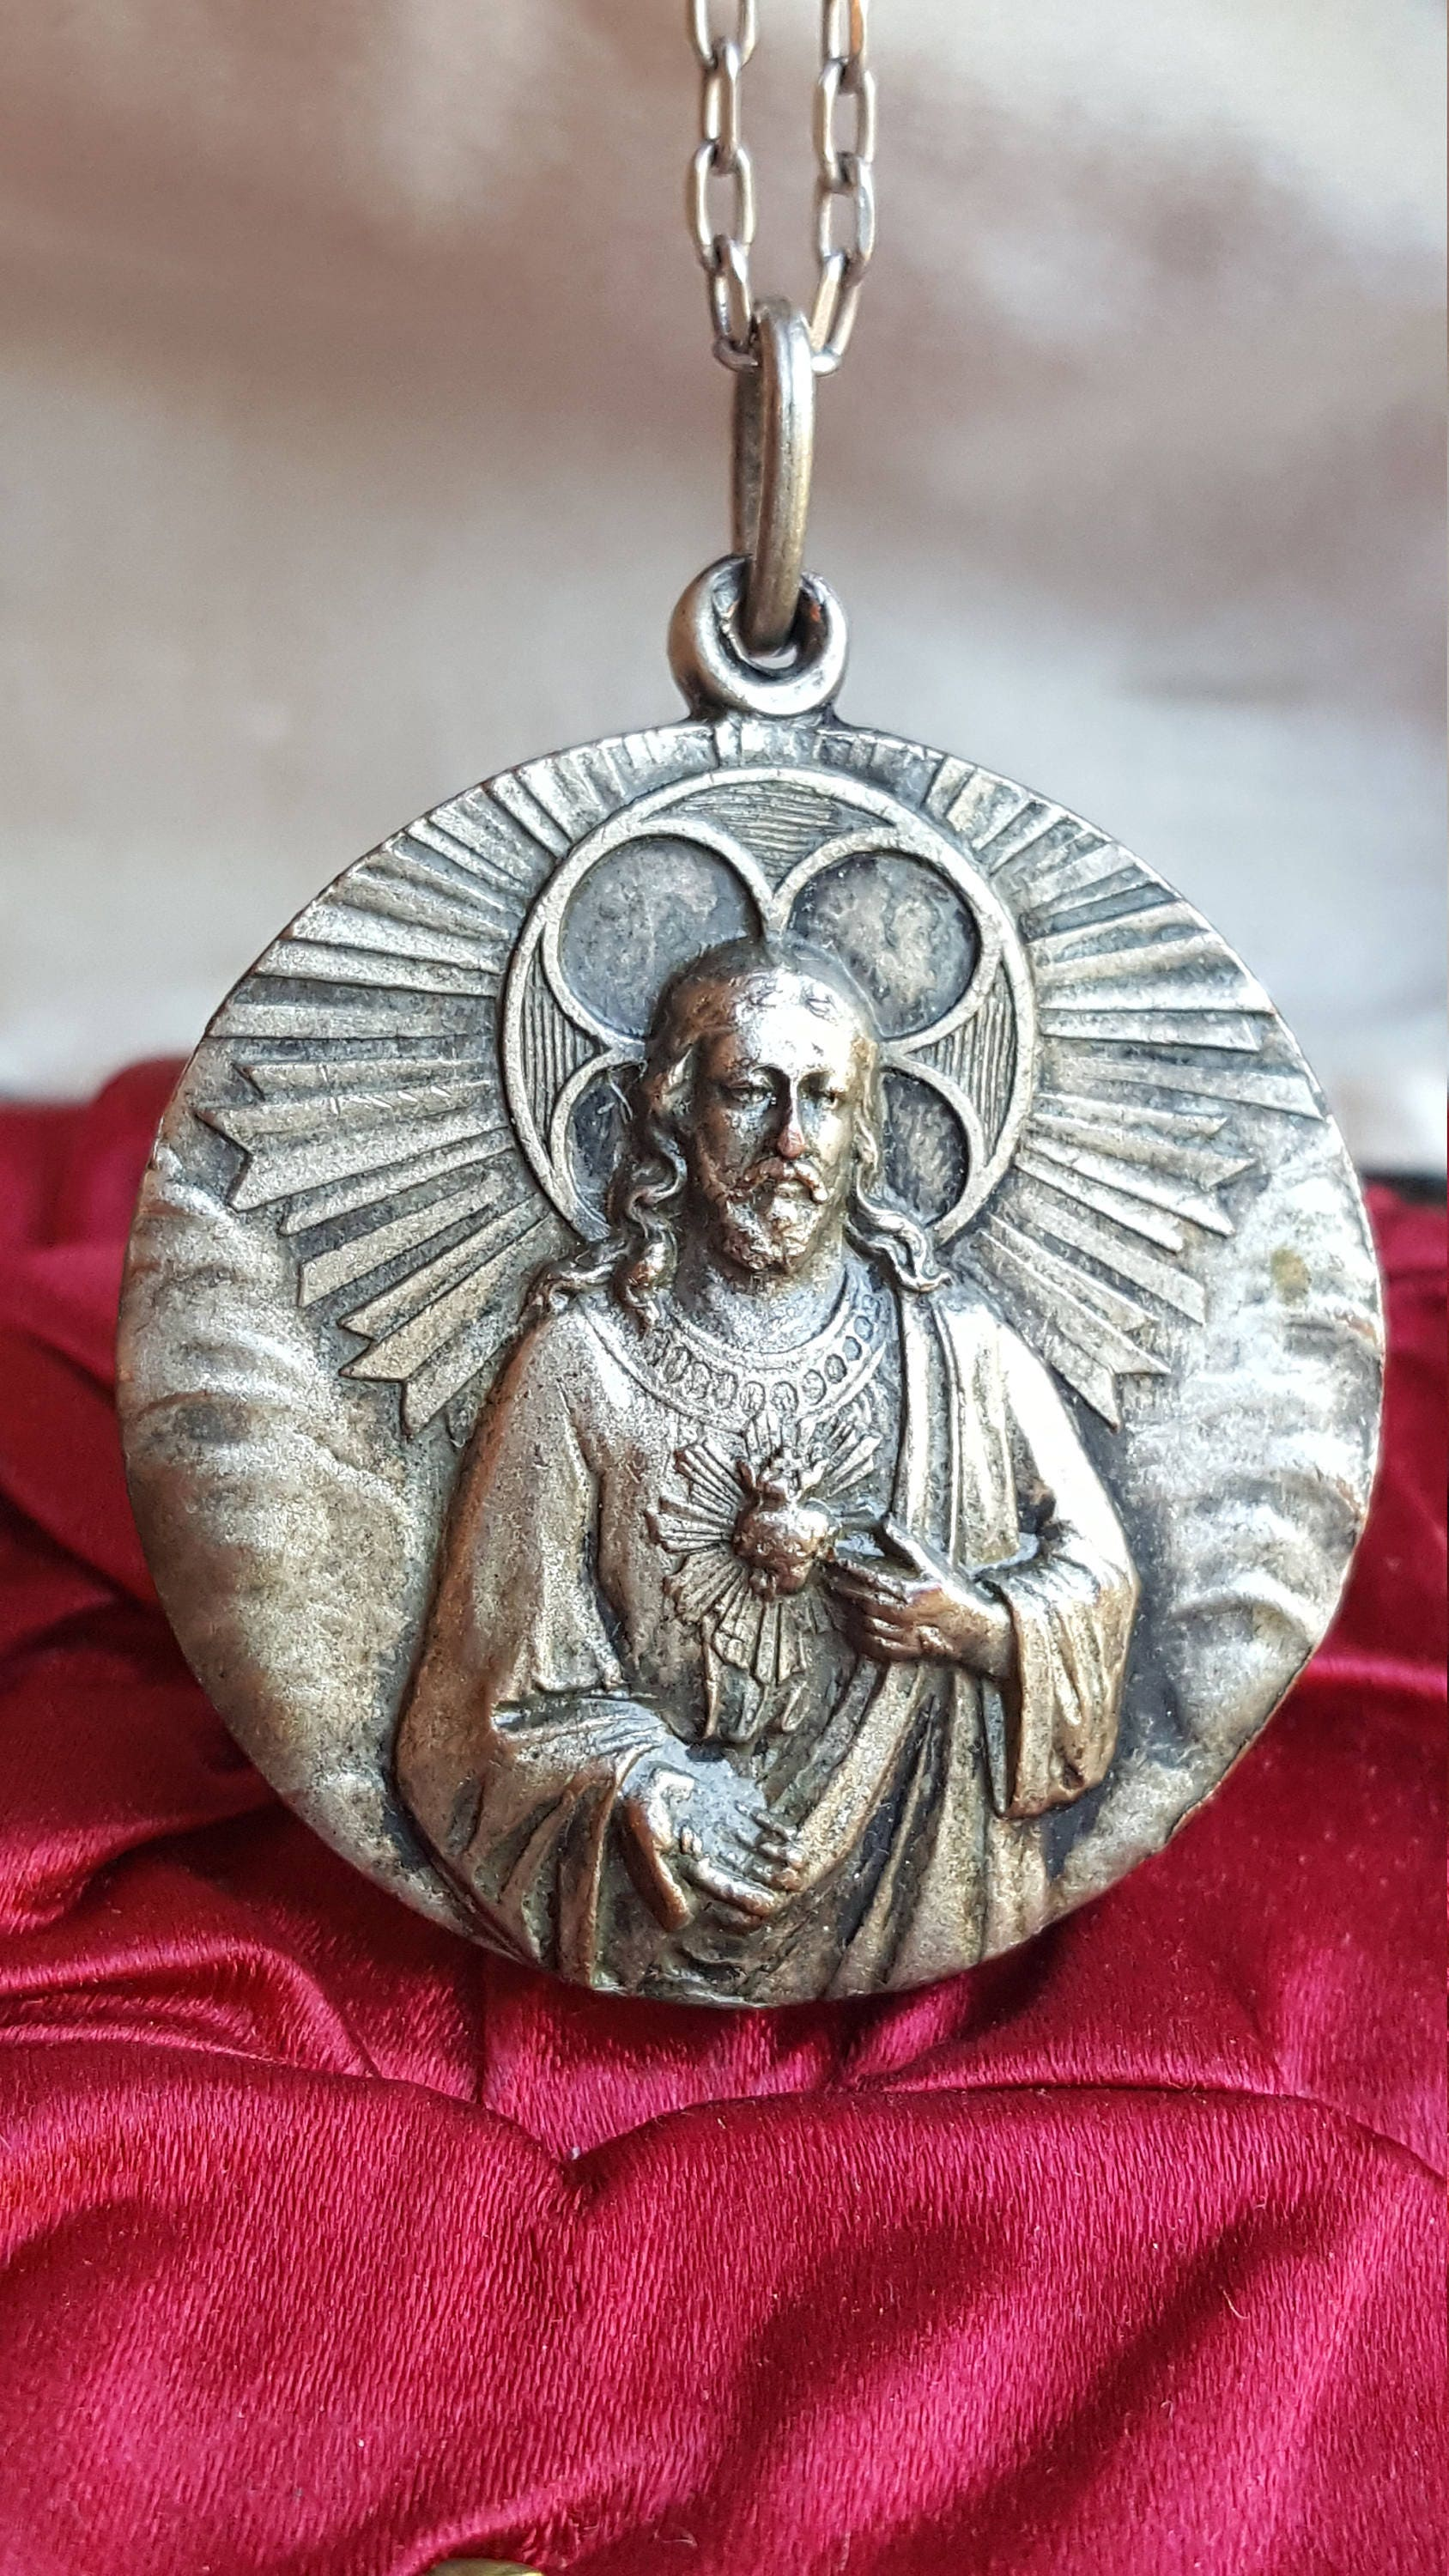 christ of medal heart by catholic lady sacred luxmeachristus charm religious mount our on etsy vintage pin medallion carmel jesus